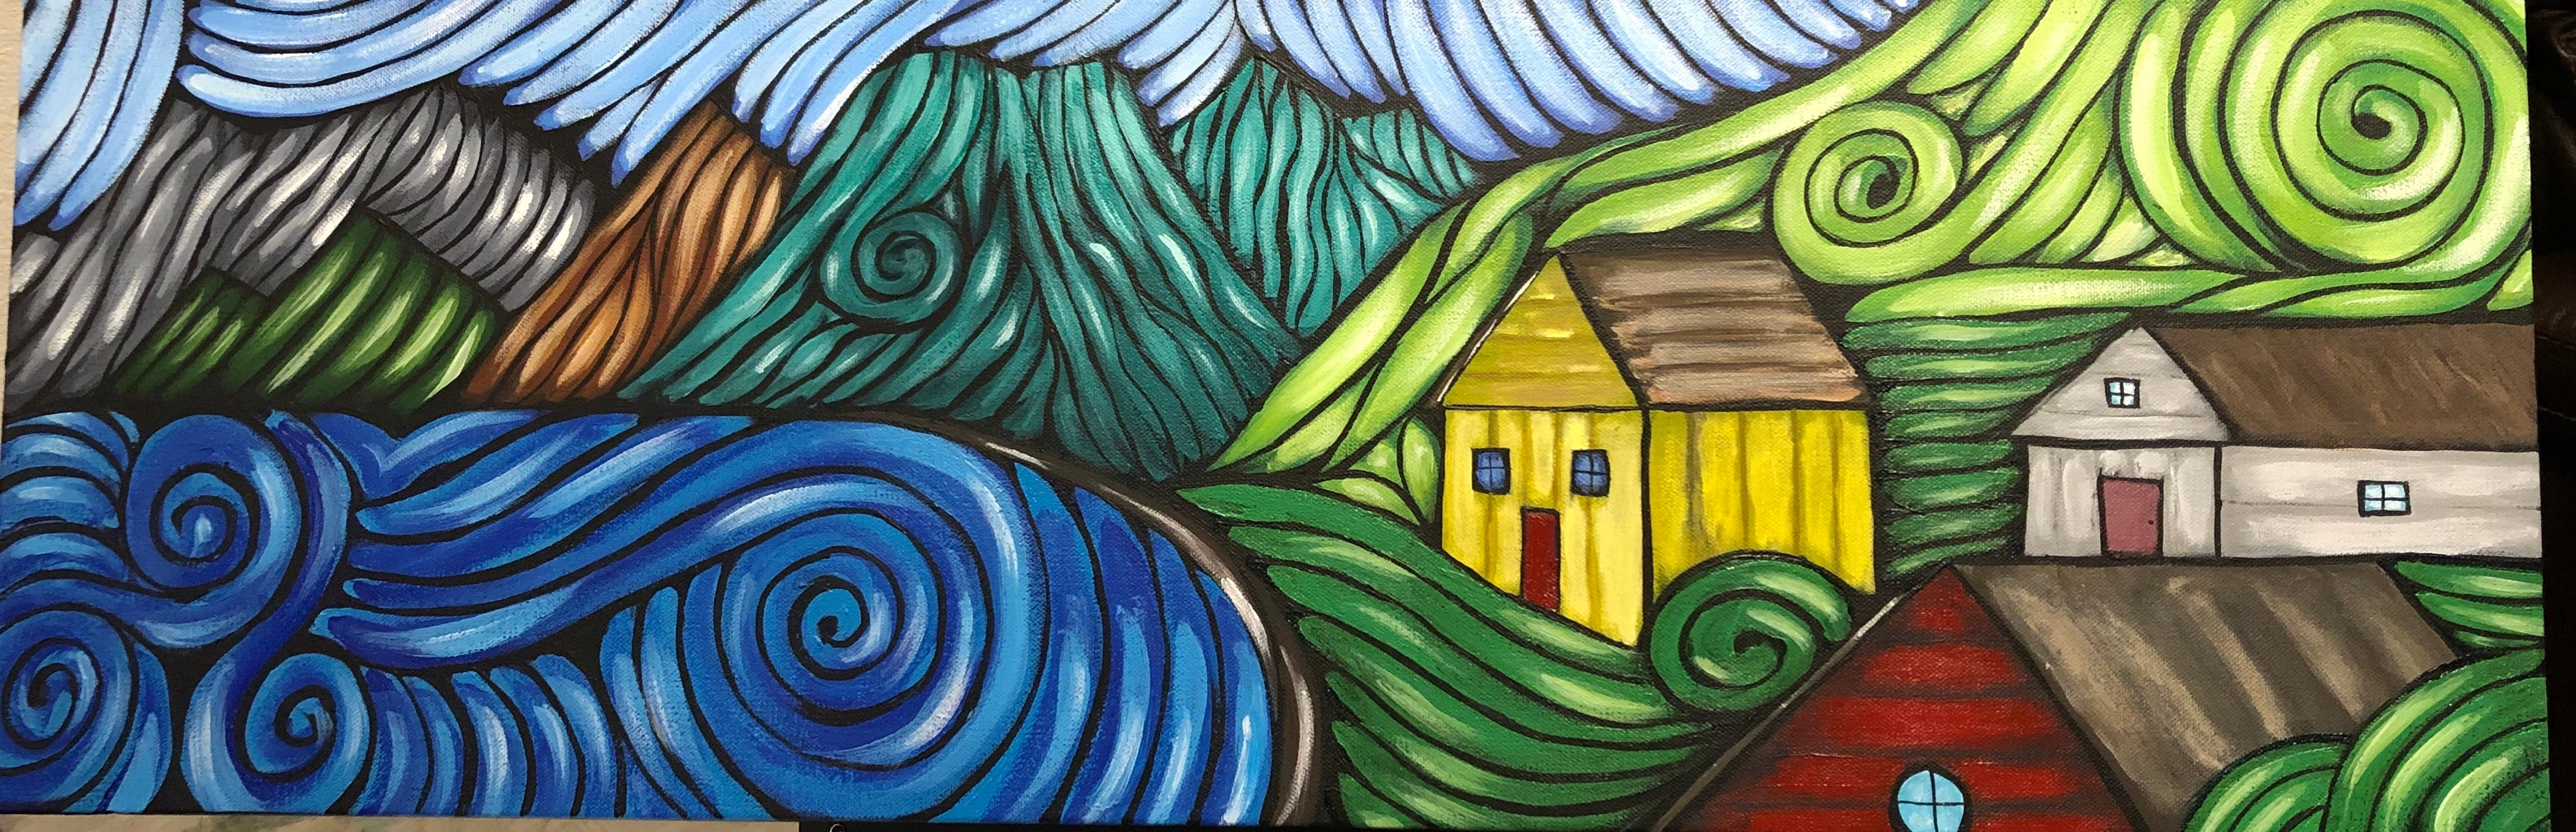 """Original Art"" Village/36"" x 12"" Acrylic on Canvas"